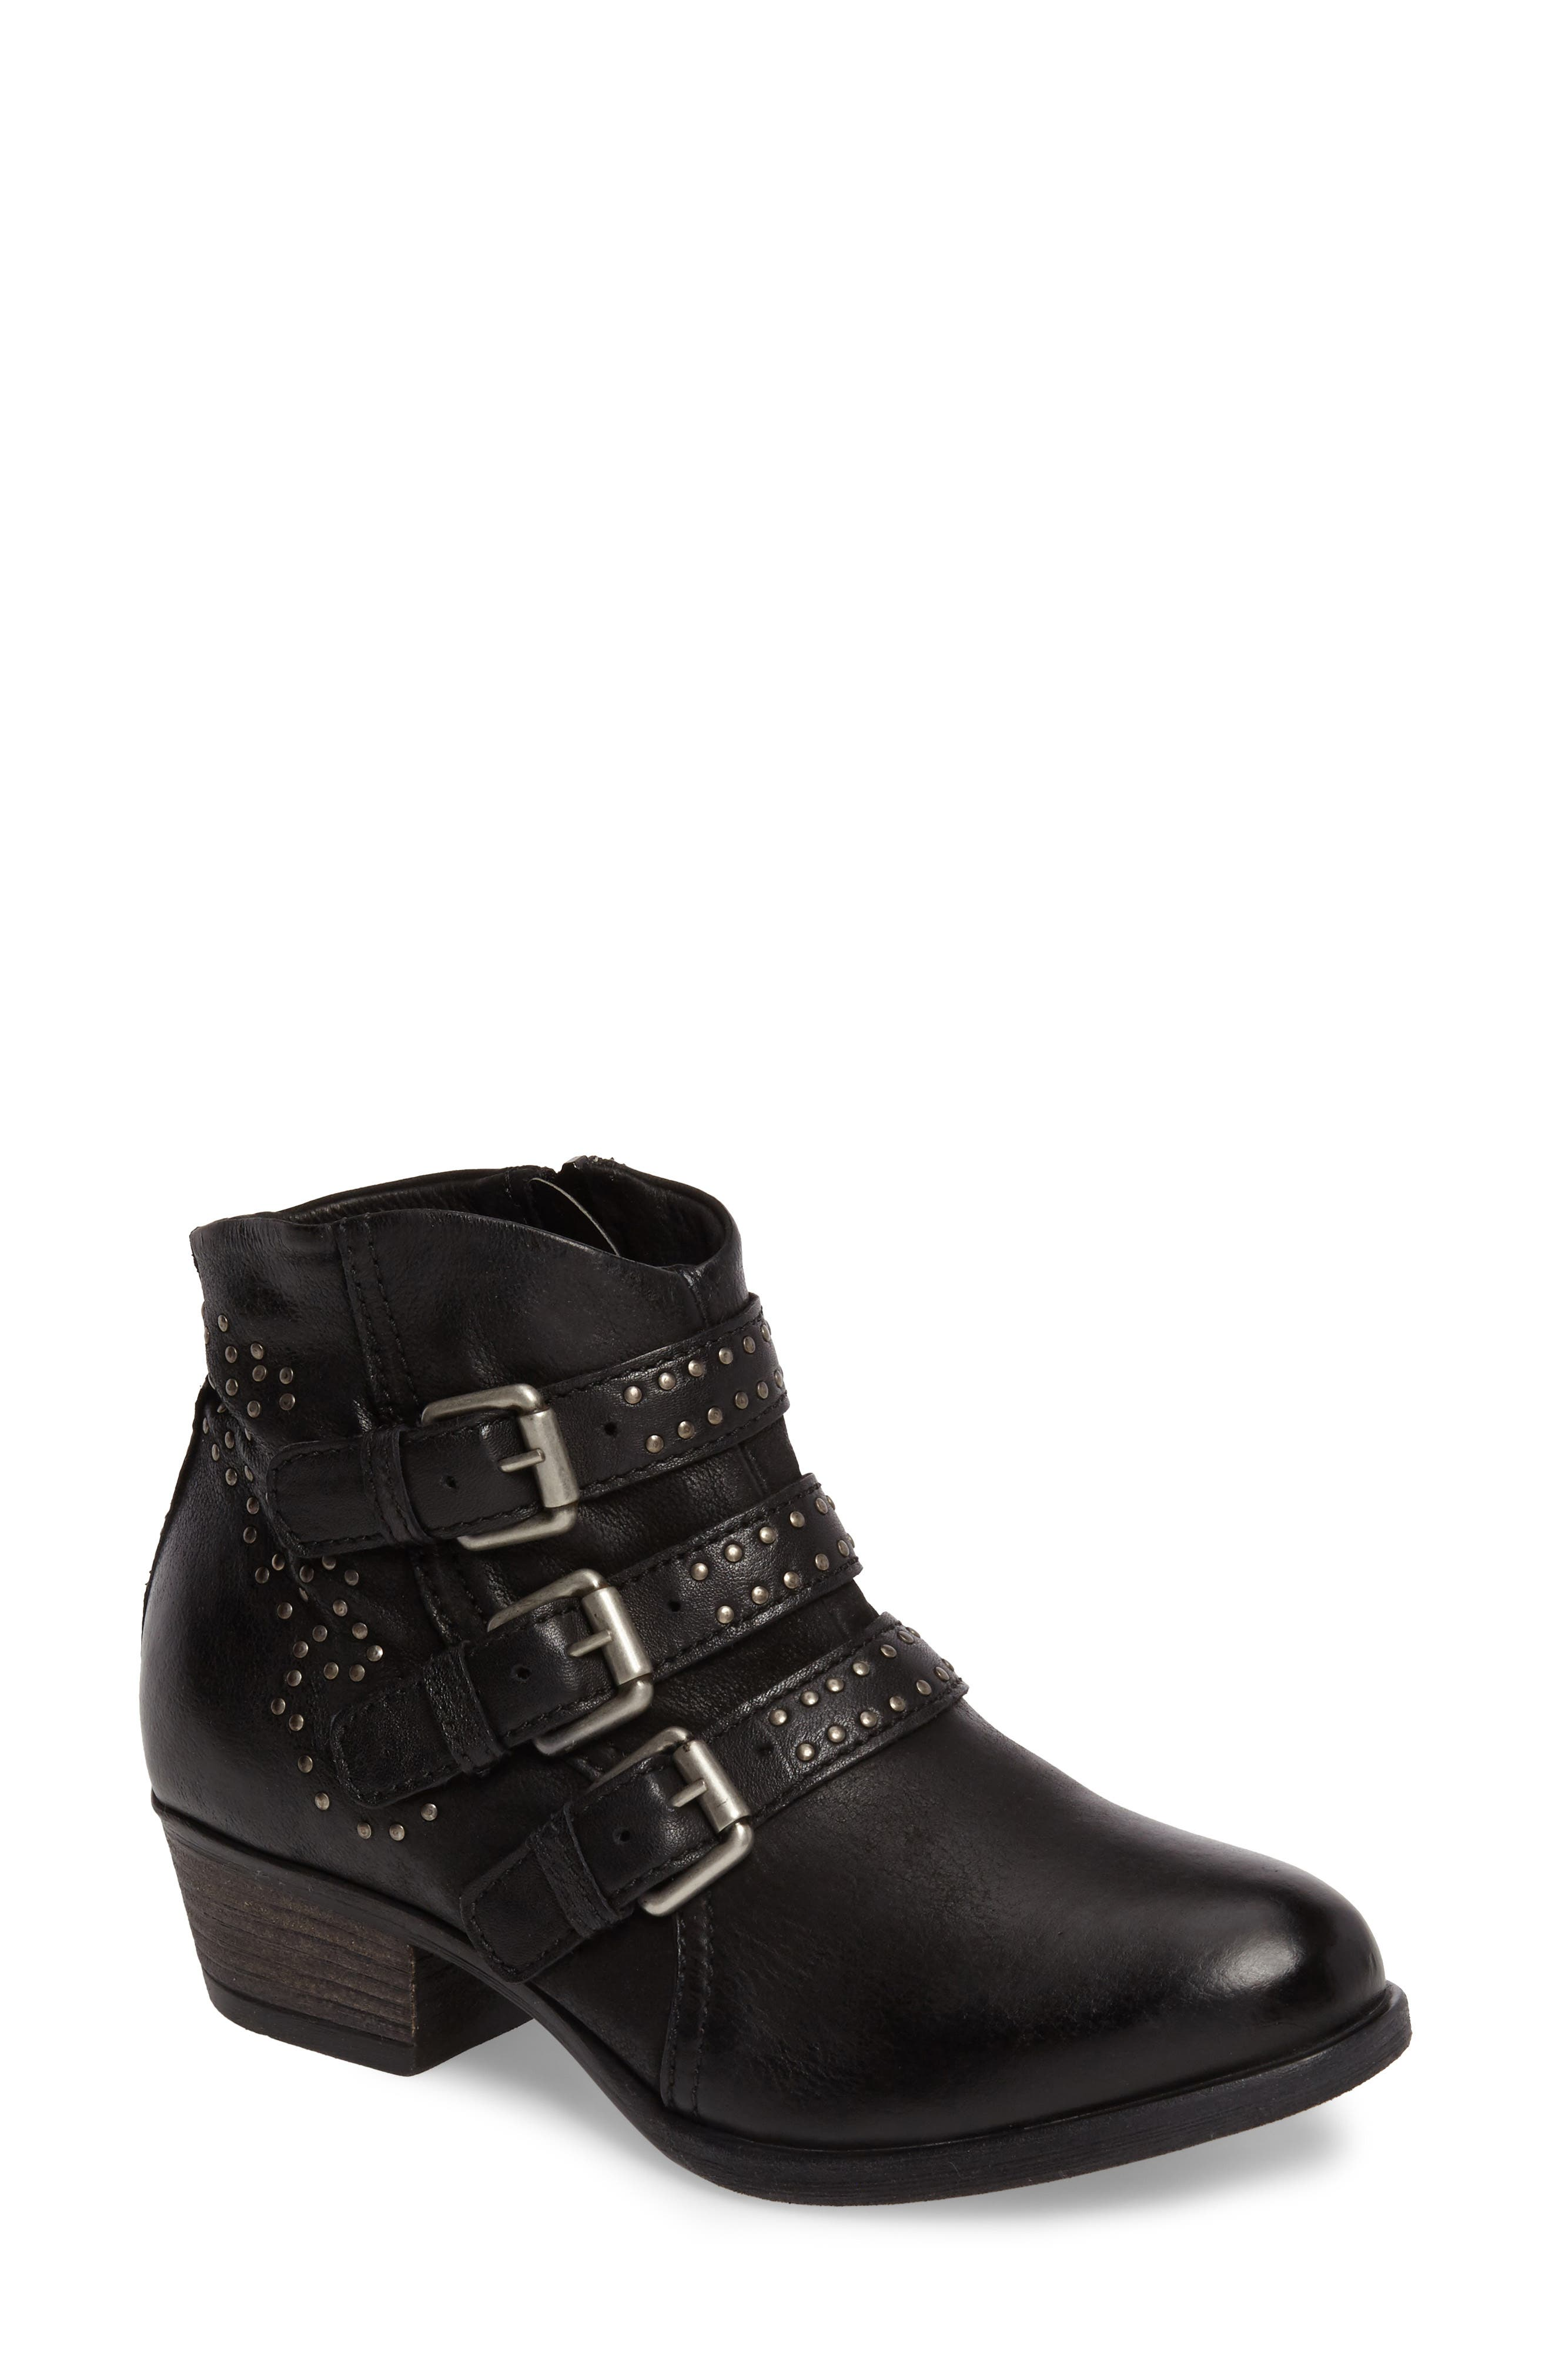 Alternate Image 1 Selected - Miz Mooz Barclay Studded Moto Bootie (Women)